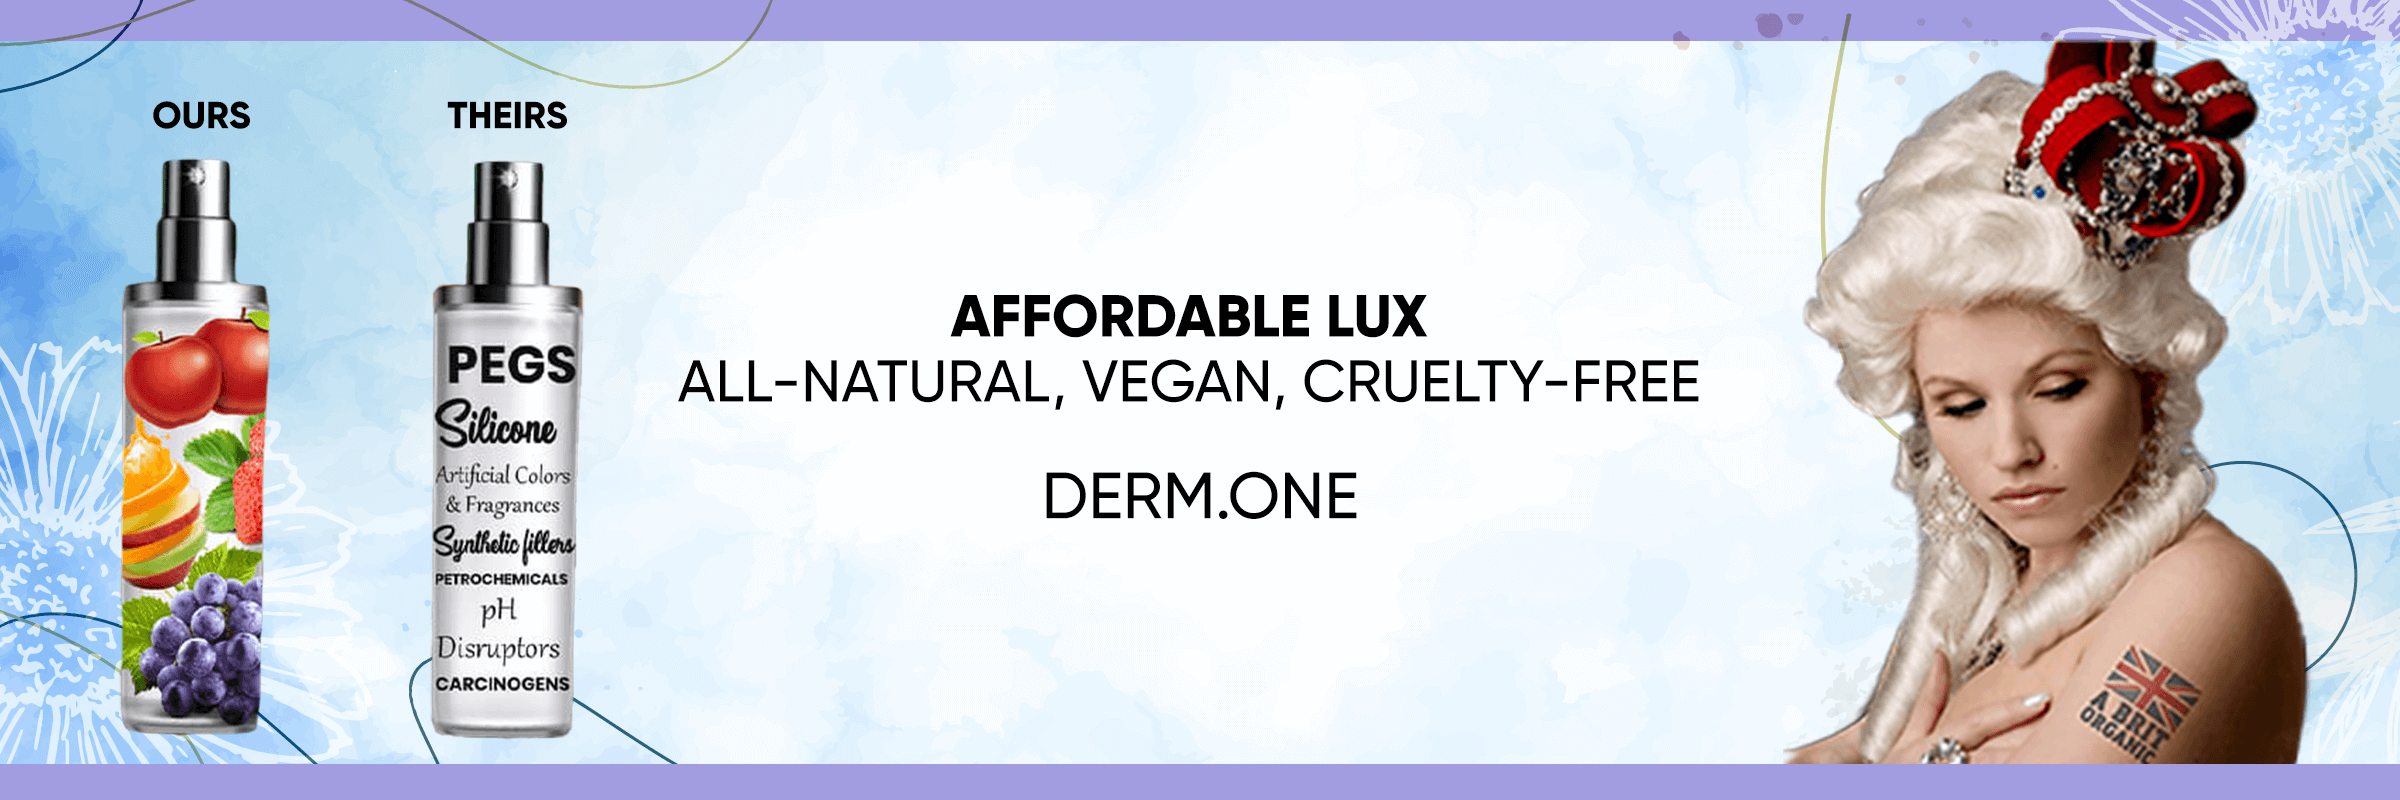 clean beauty products, clean beauty products online, affordable lux, all natural, vegan, cruelty free, derm.one